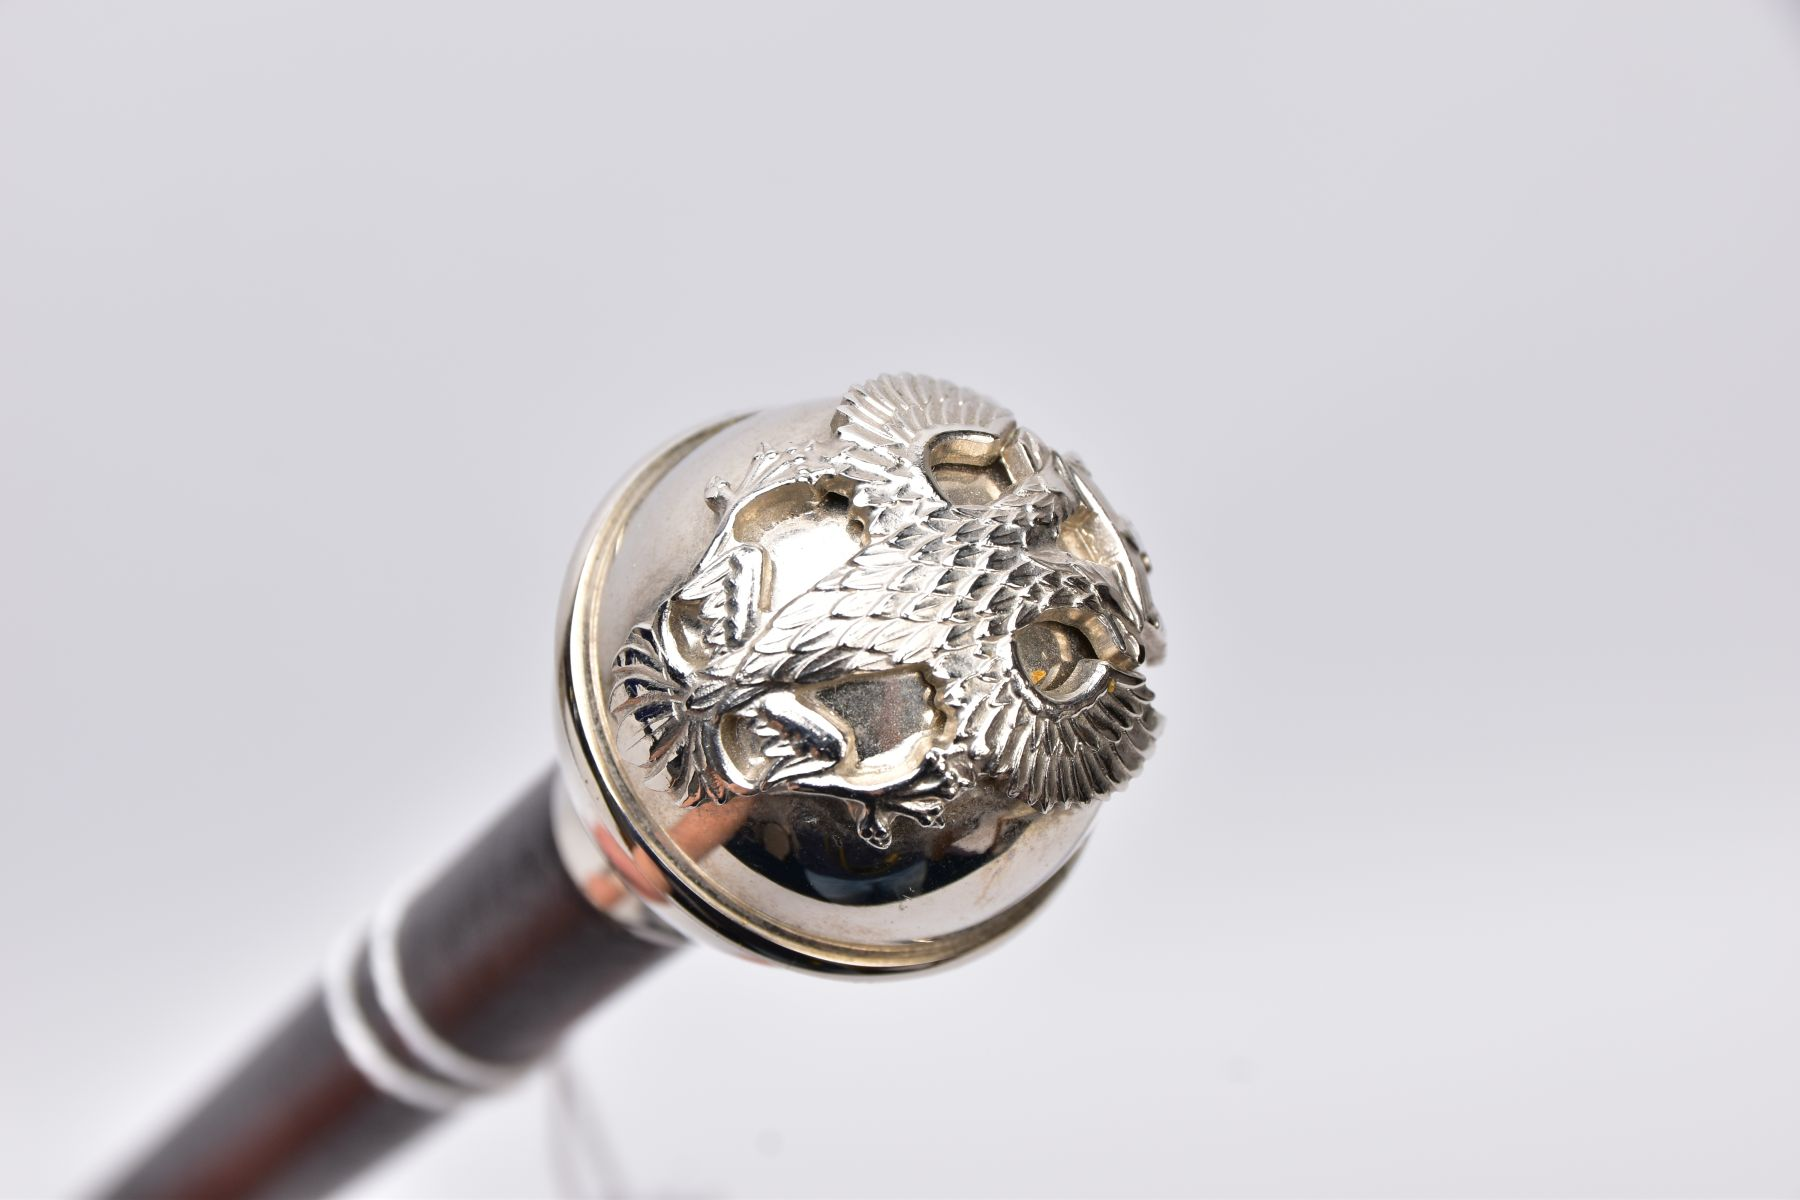 TWO MILITARY RELATED SWAGGER STYLE STICKS, to include a white metal sphere topped with white metal - Image 5 of 9